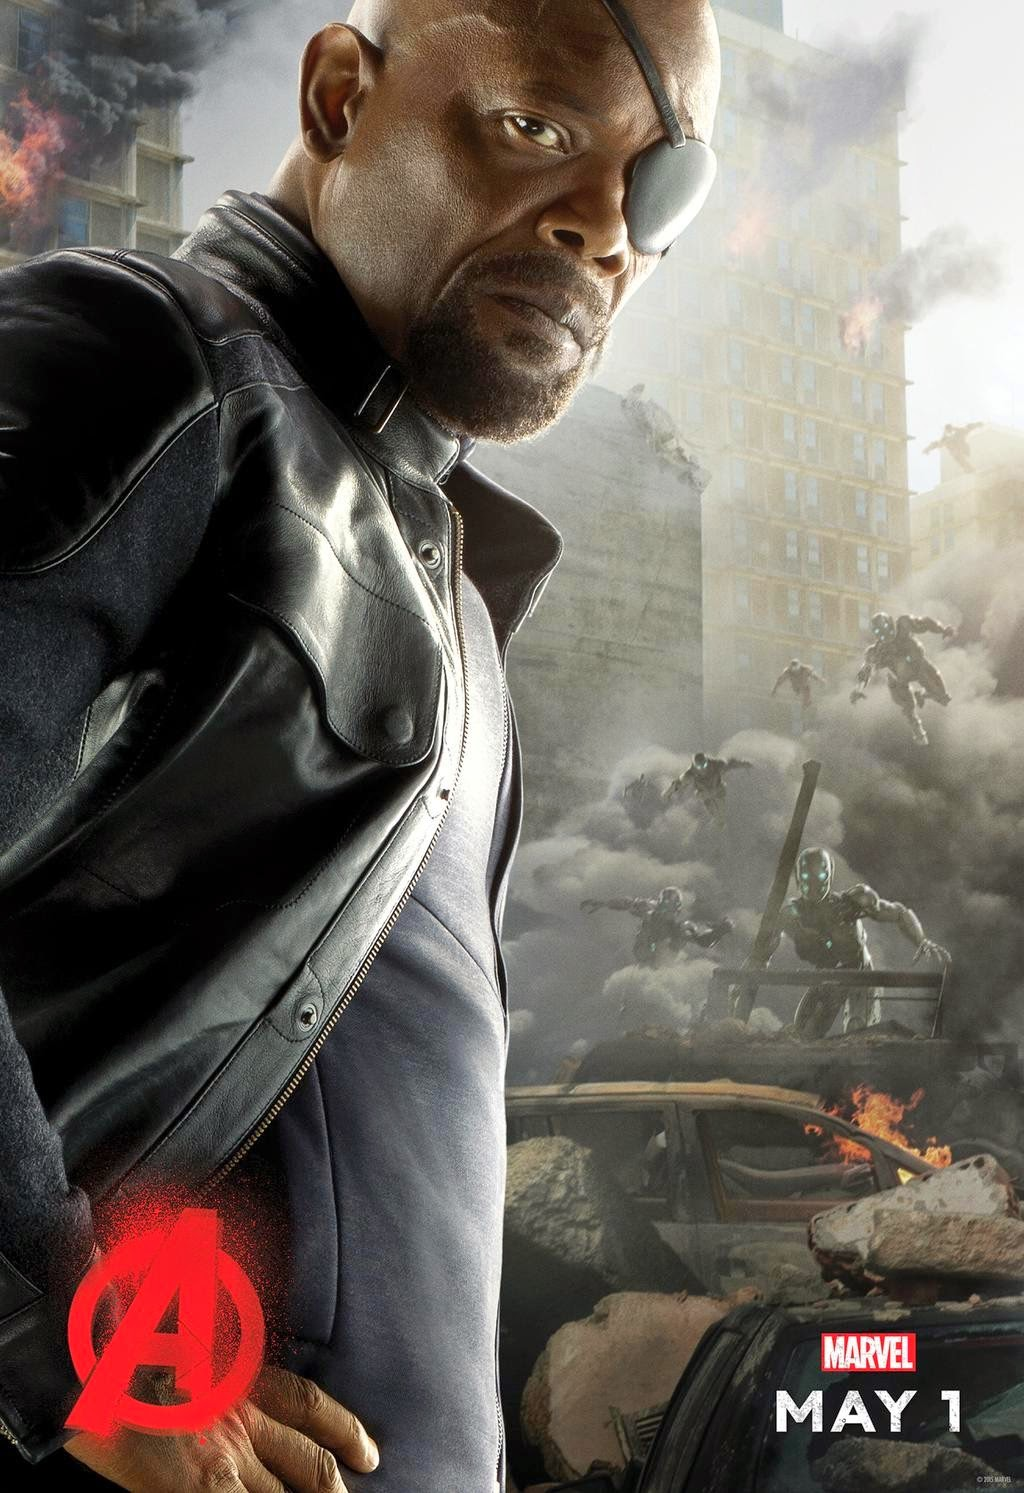 Marvel's Avengers Age of Ultron Character Movie Poster Set - Samuel L. Jackson as Nick Fury